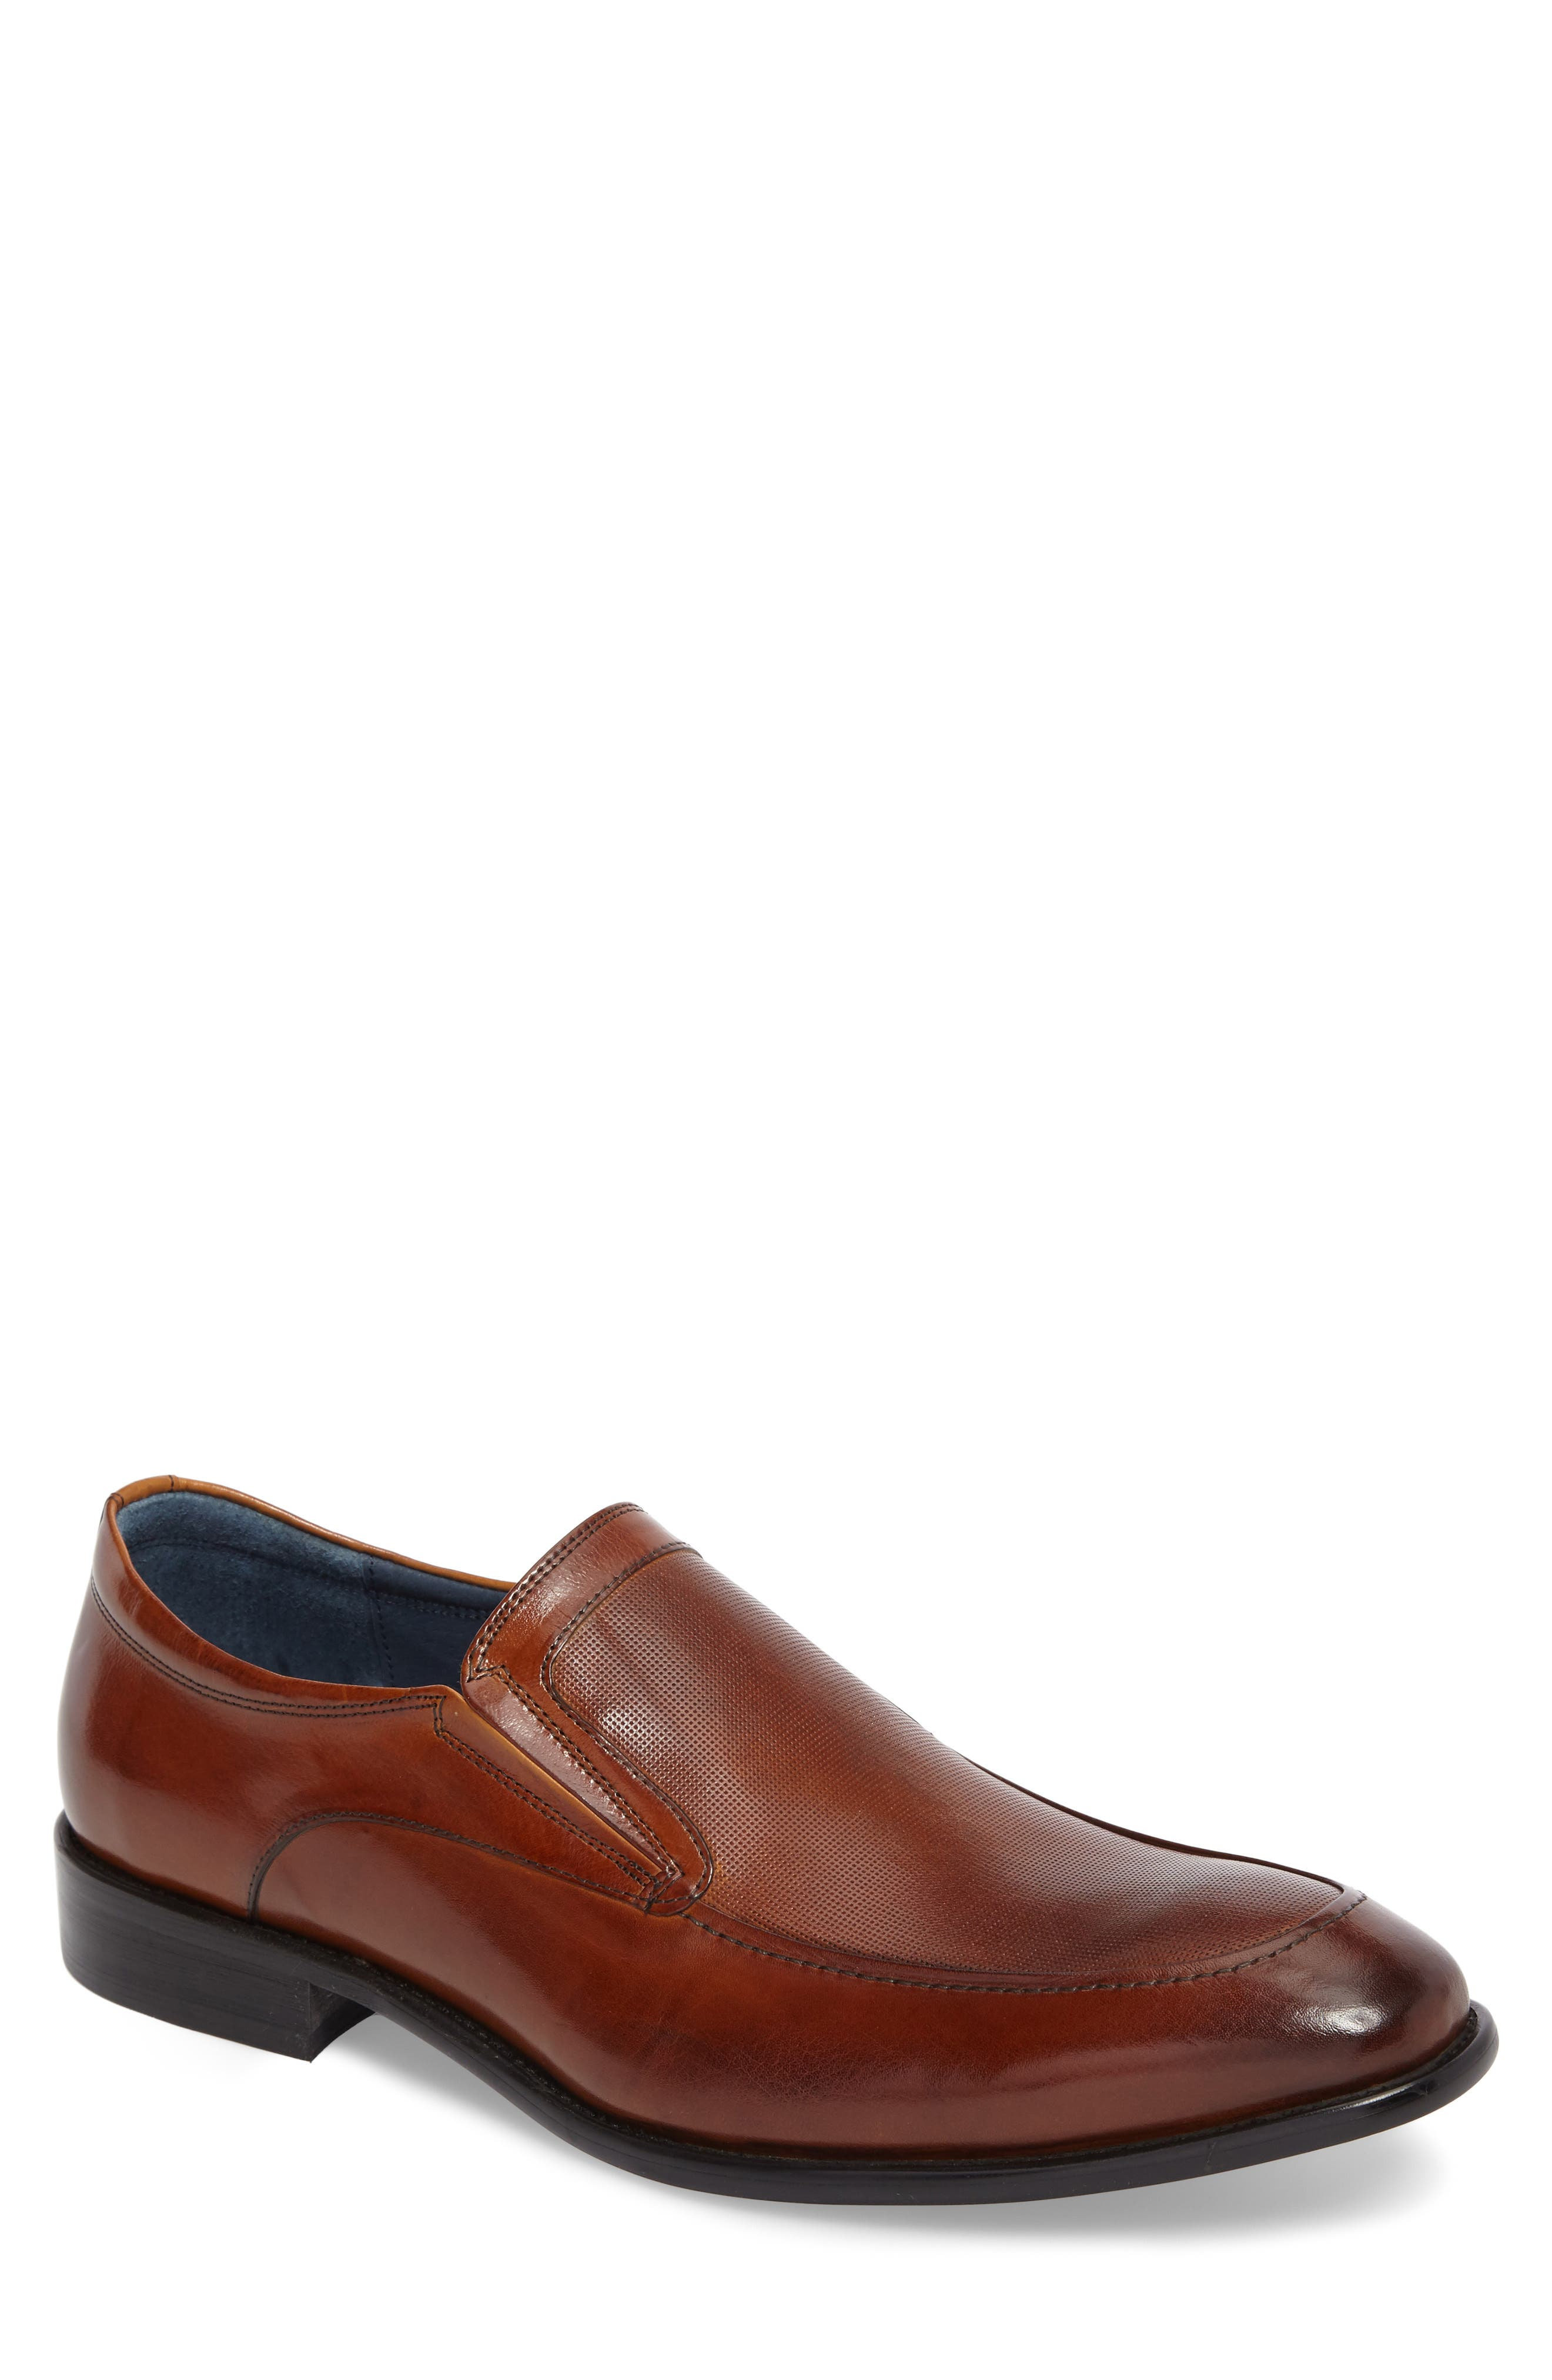 Jace Embossed Apron Toe Loafer,                             Main thumbnail 1, color,                             Cognac Leather